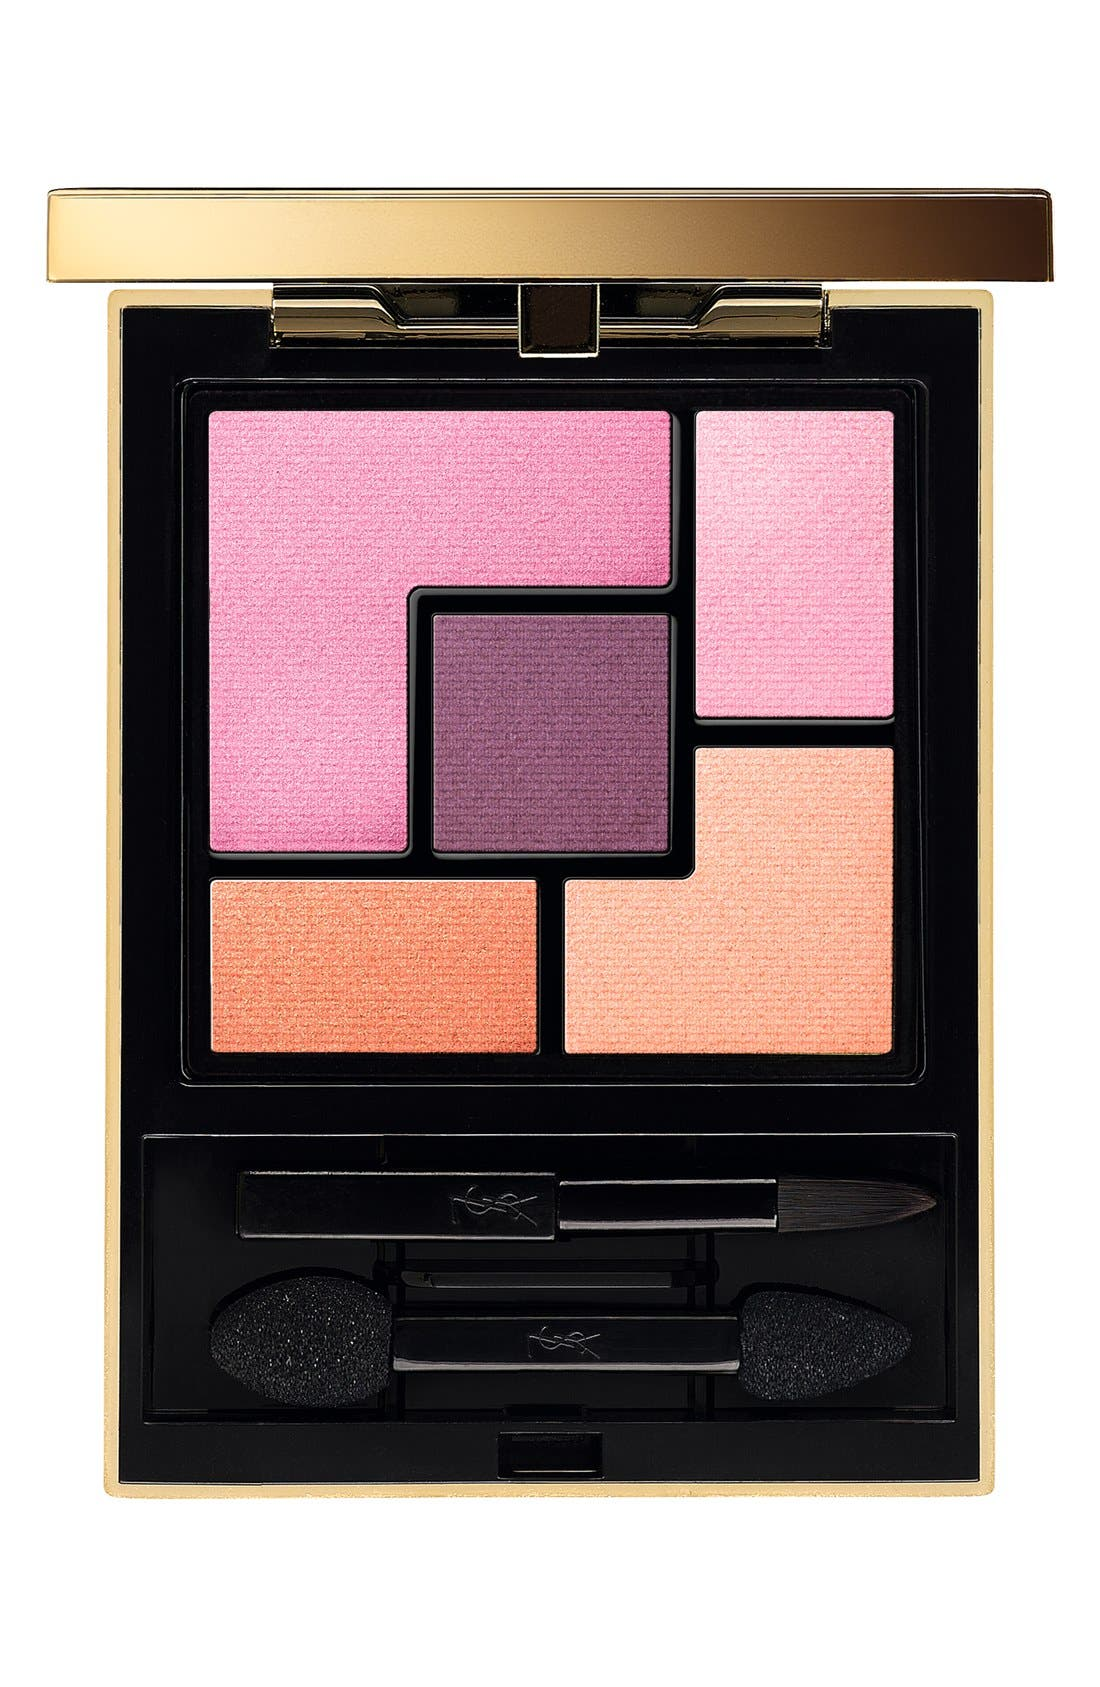 Yves Saint Laurent 5 Color Couture Palette - 09 Rose Baby Doll